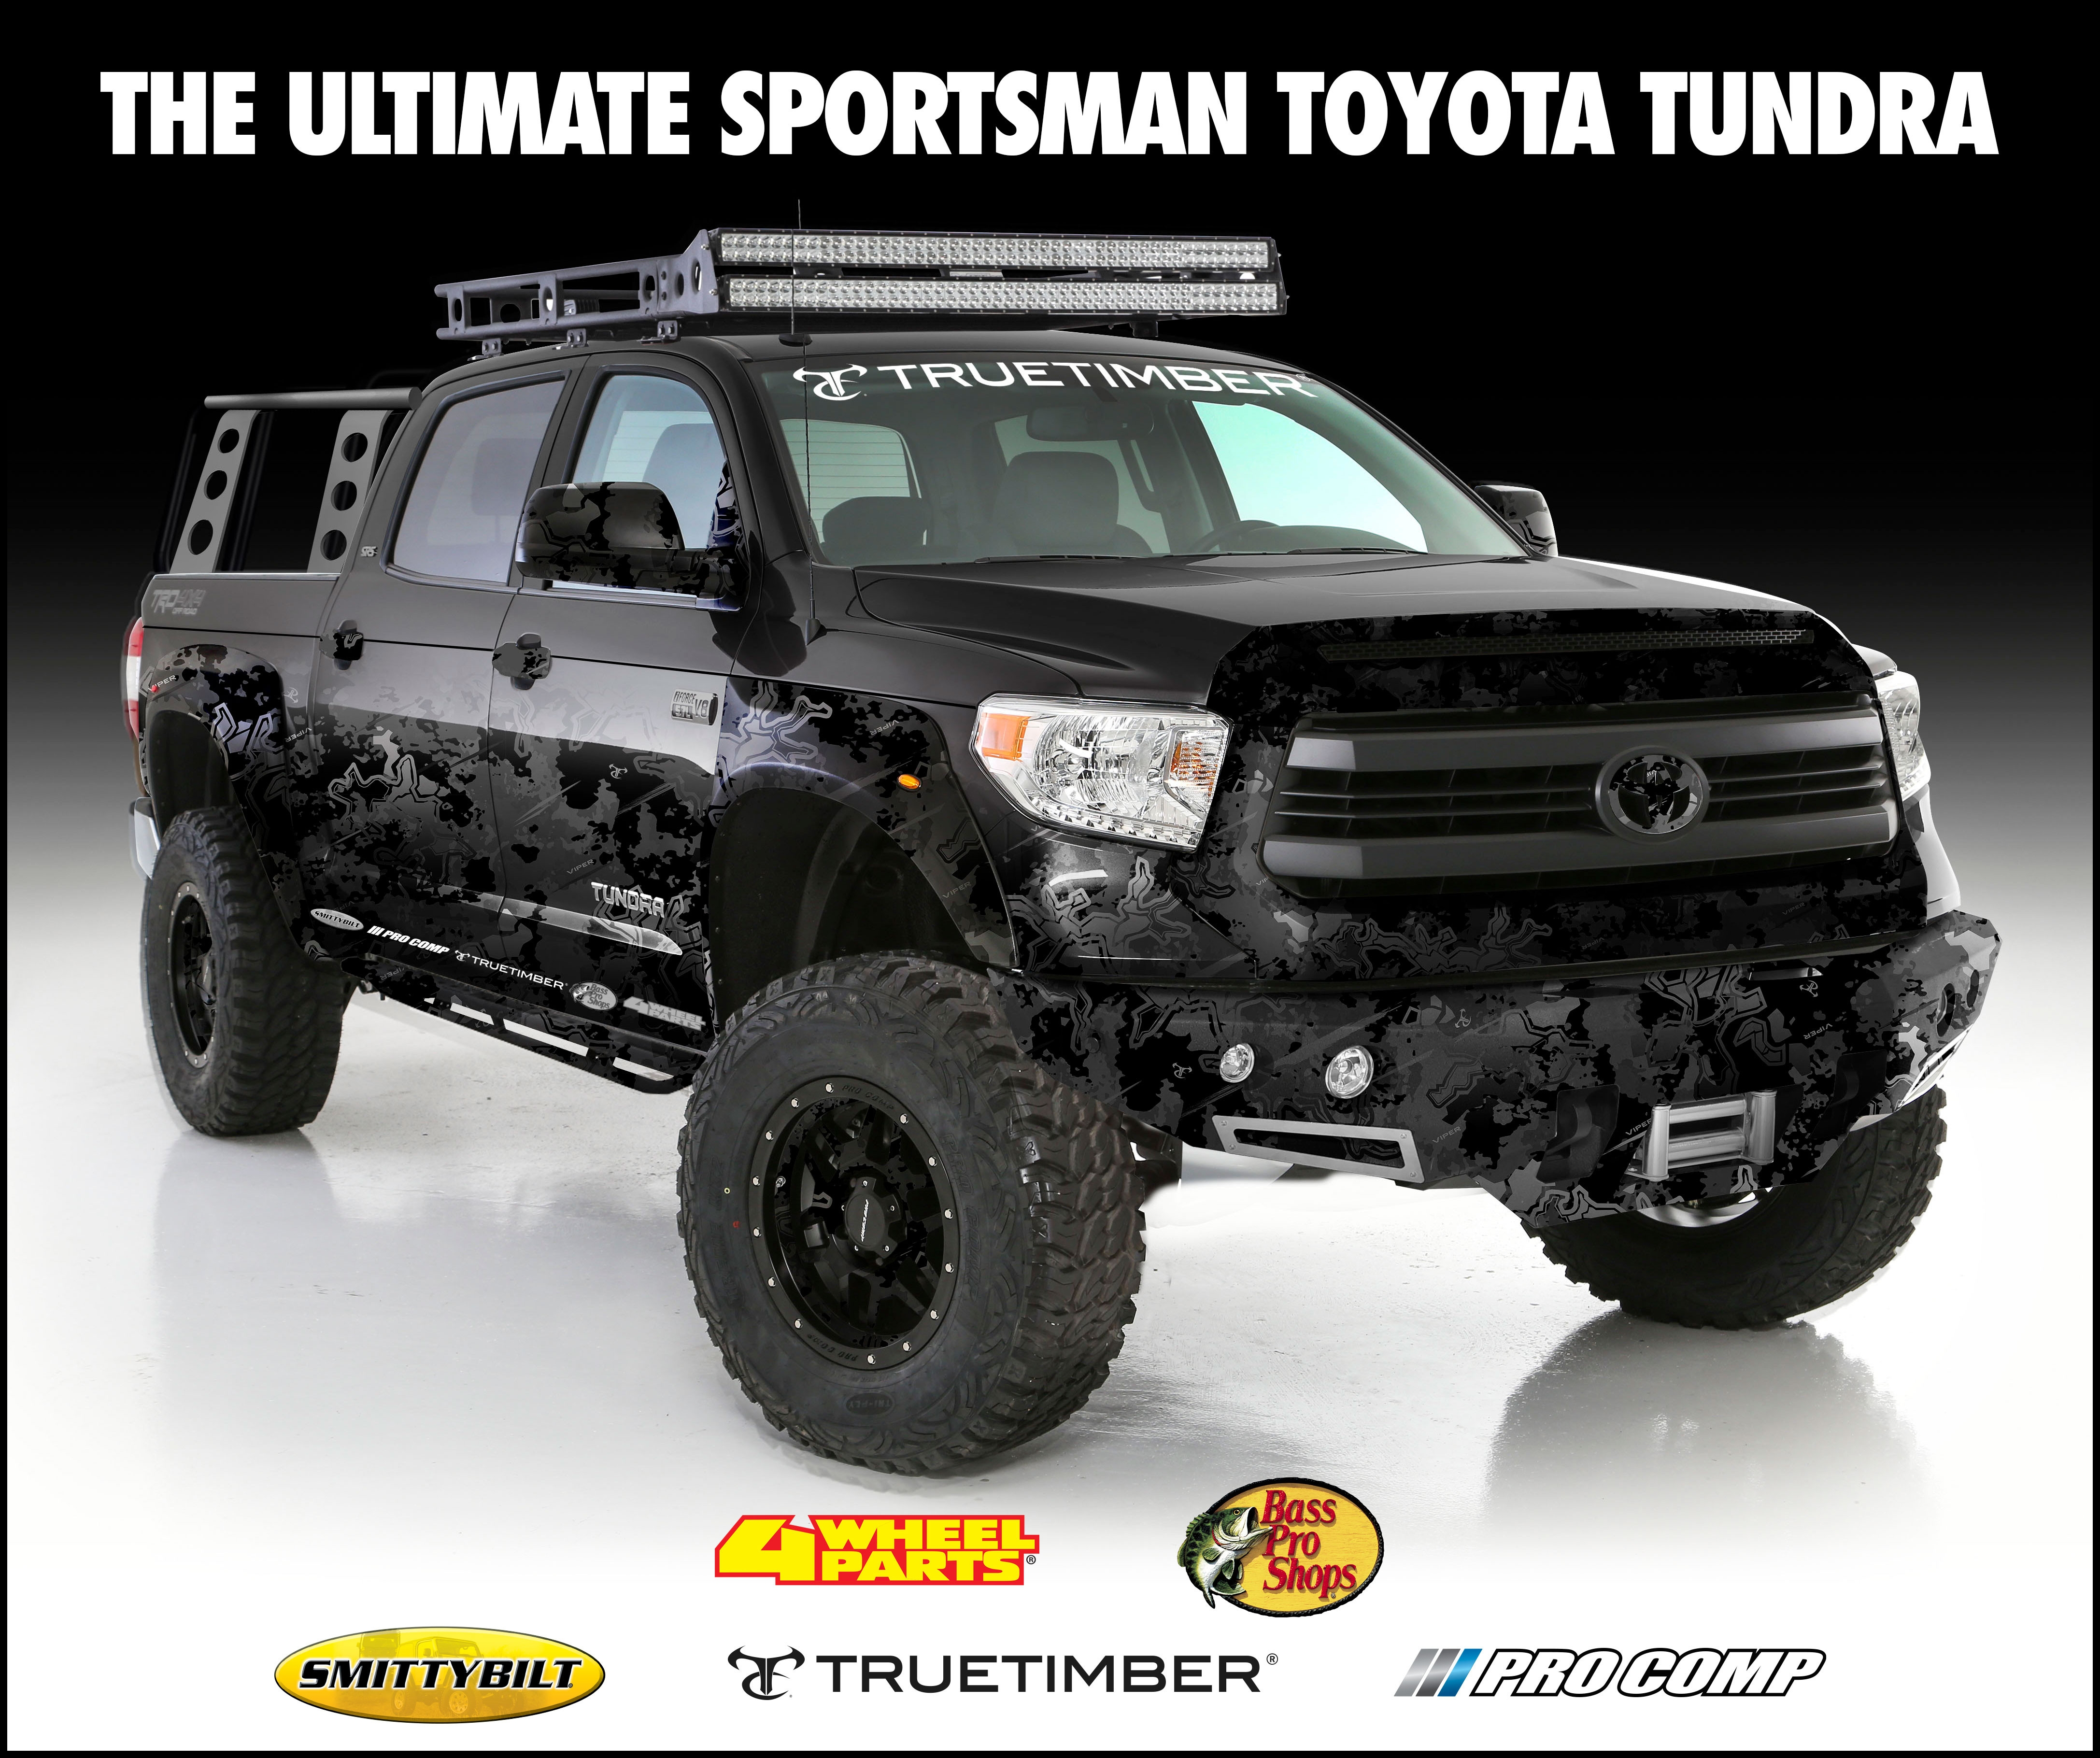 Toyota Tundra Parts Best 2007 toyota Tundra Accessories & Parts at Carid · Toyota Tundra Parts Best toyota